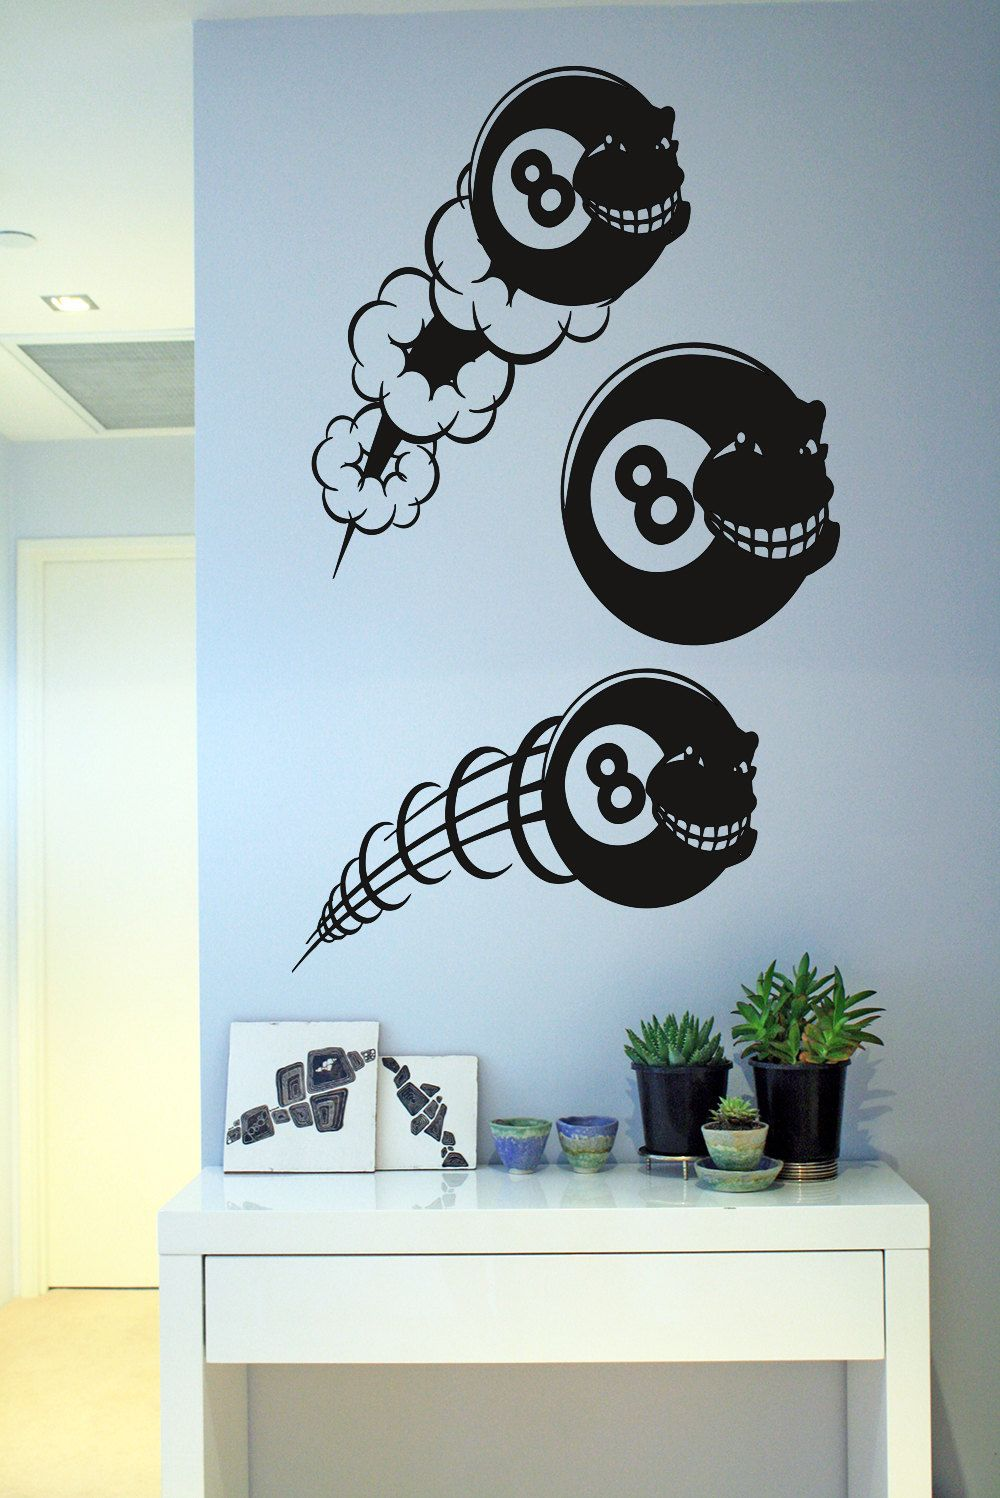 Wall vinyl sticker decals mural room design pattern art decor ball wall vinyl sticker decals mural room design pattern art decor ball billiards pool eight number game amipublicfo Images